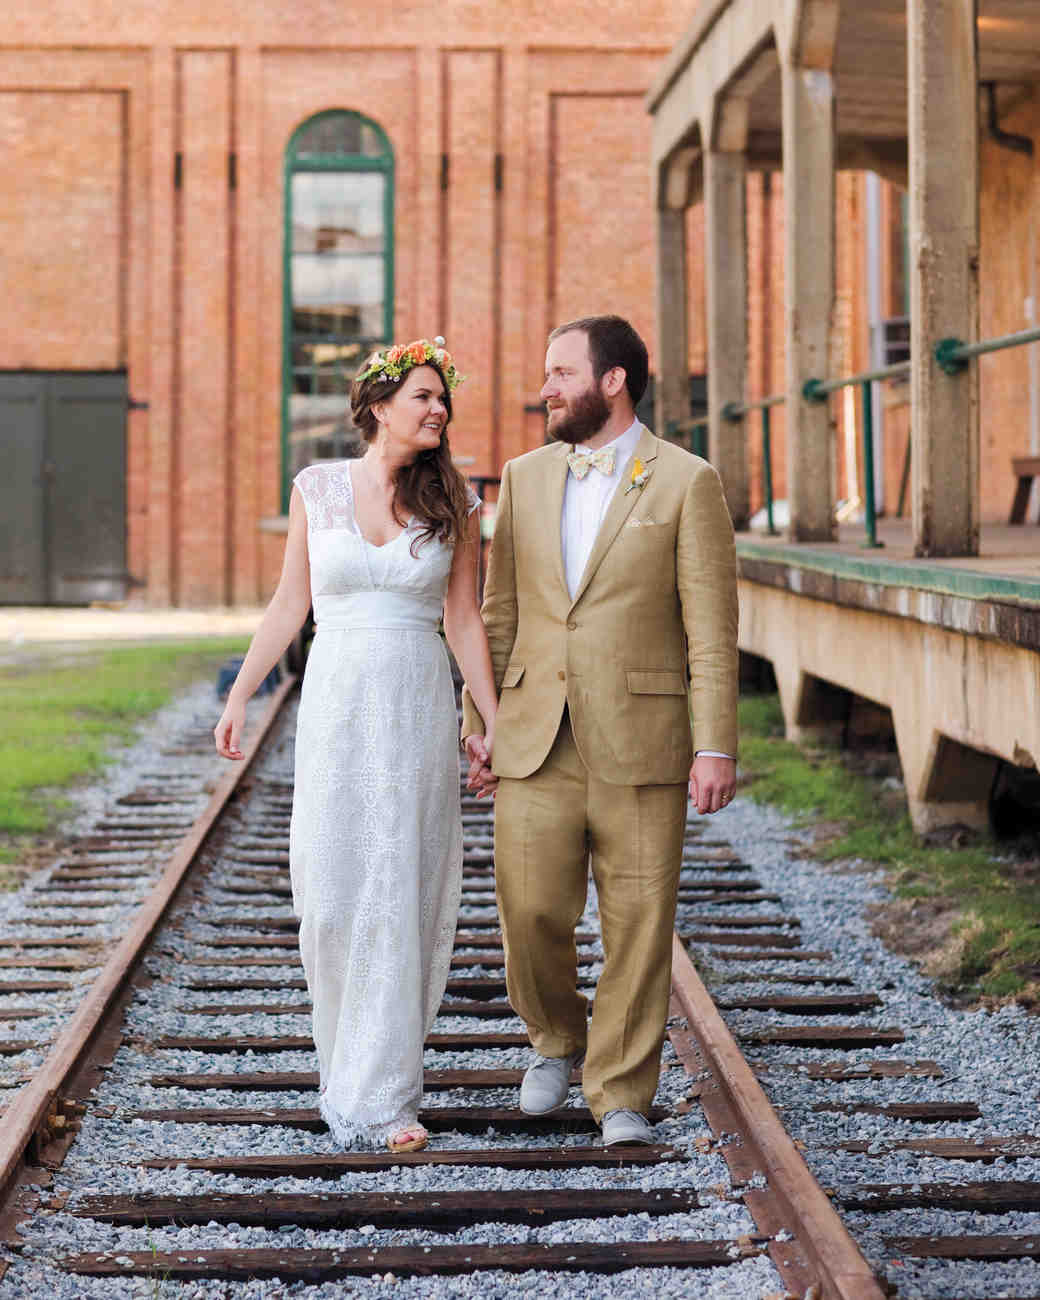 maggie-bryan-couple-portraits-0010-mwd108897.jpg